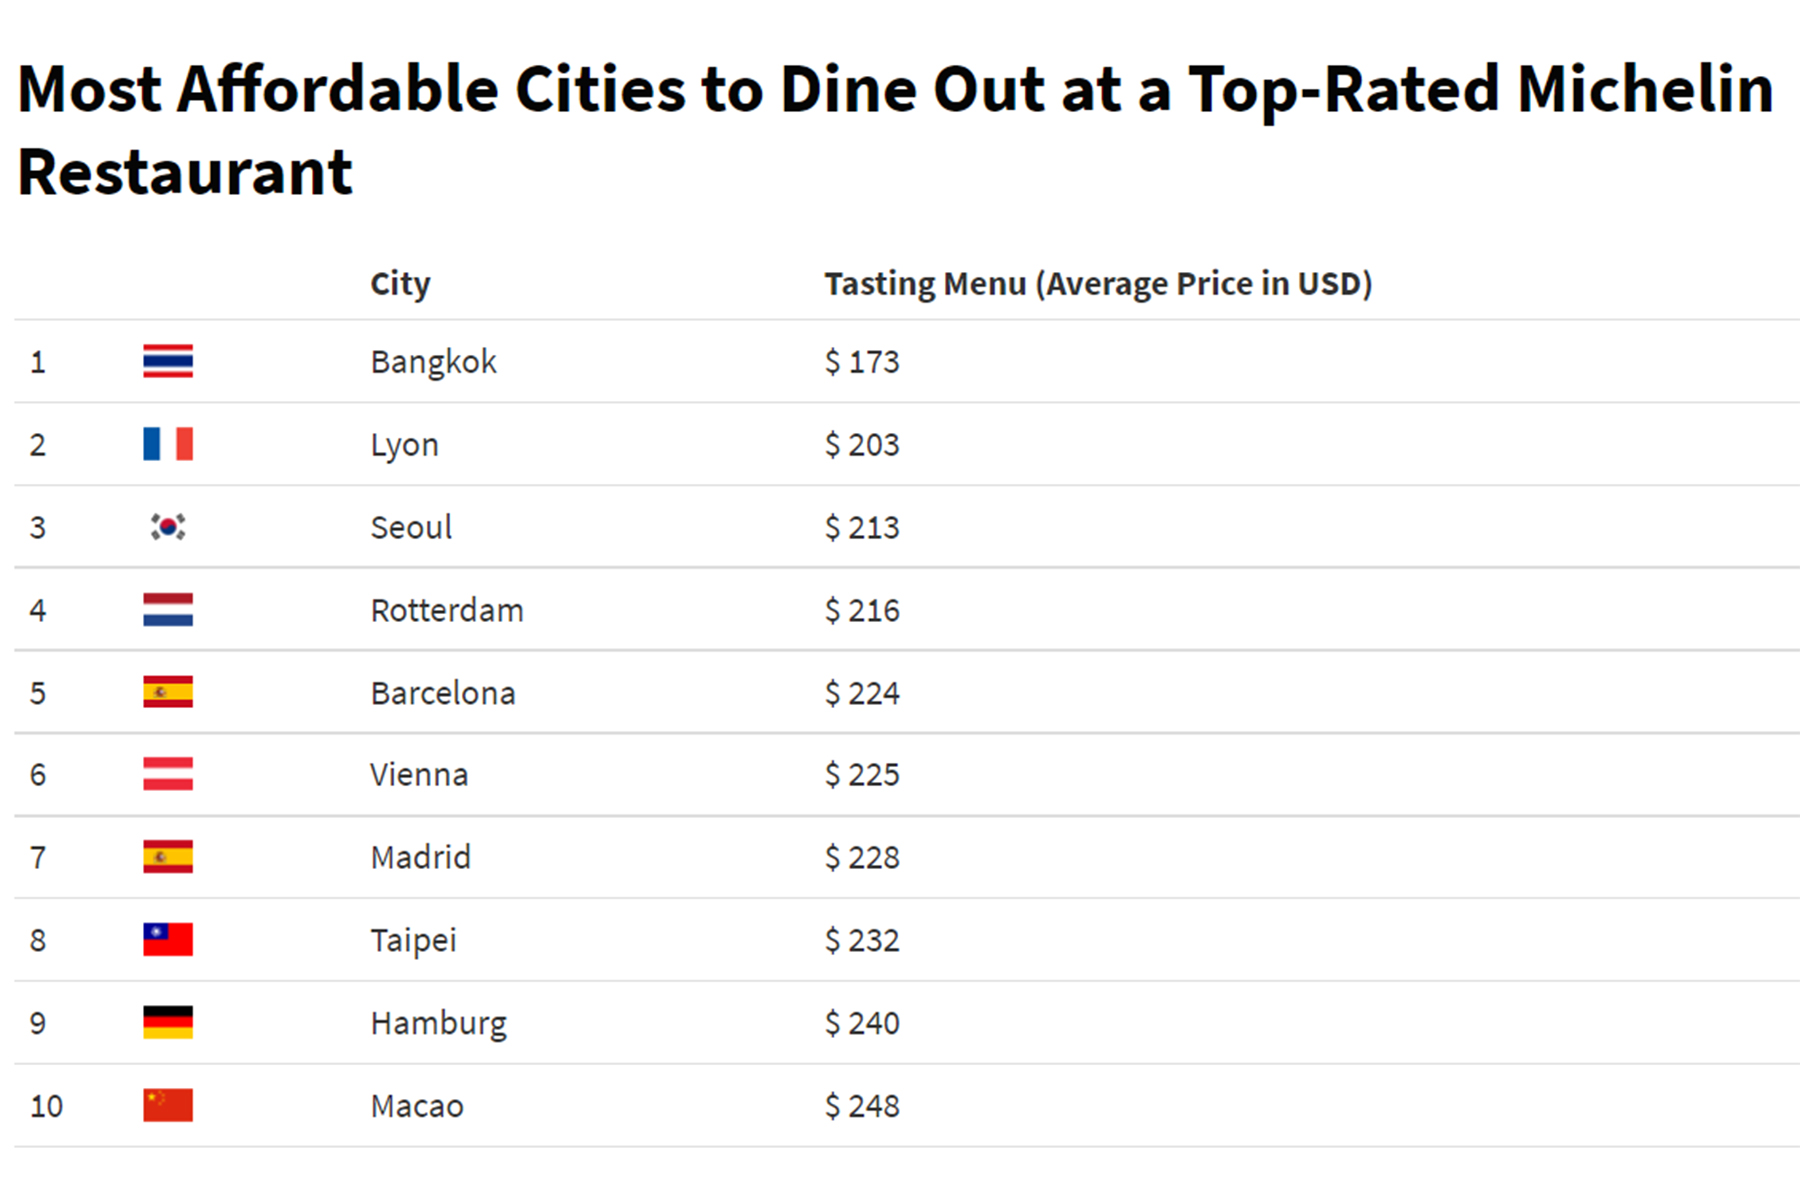 Most Affordable Cities To Dine Out at a Top-Rated Michelin Restaurant infographic